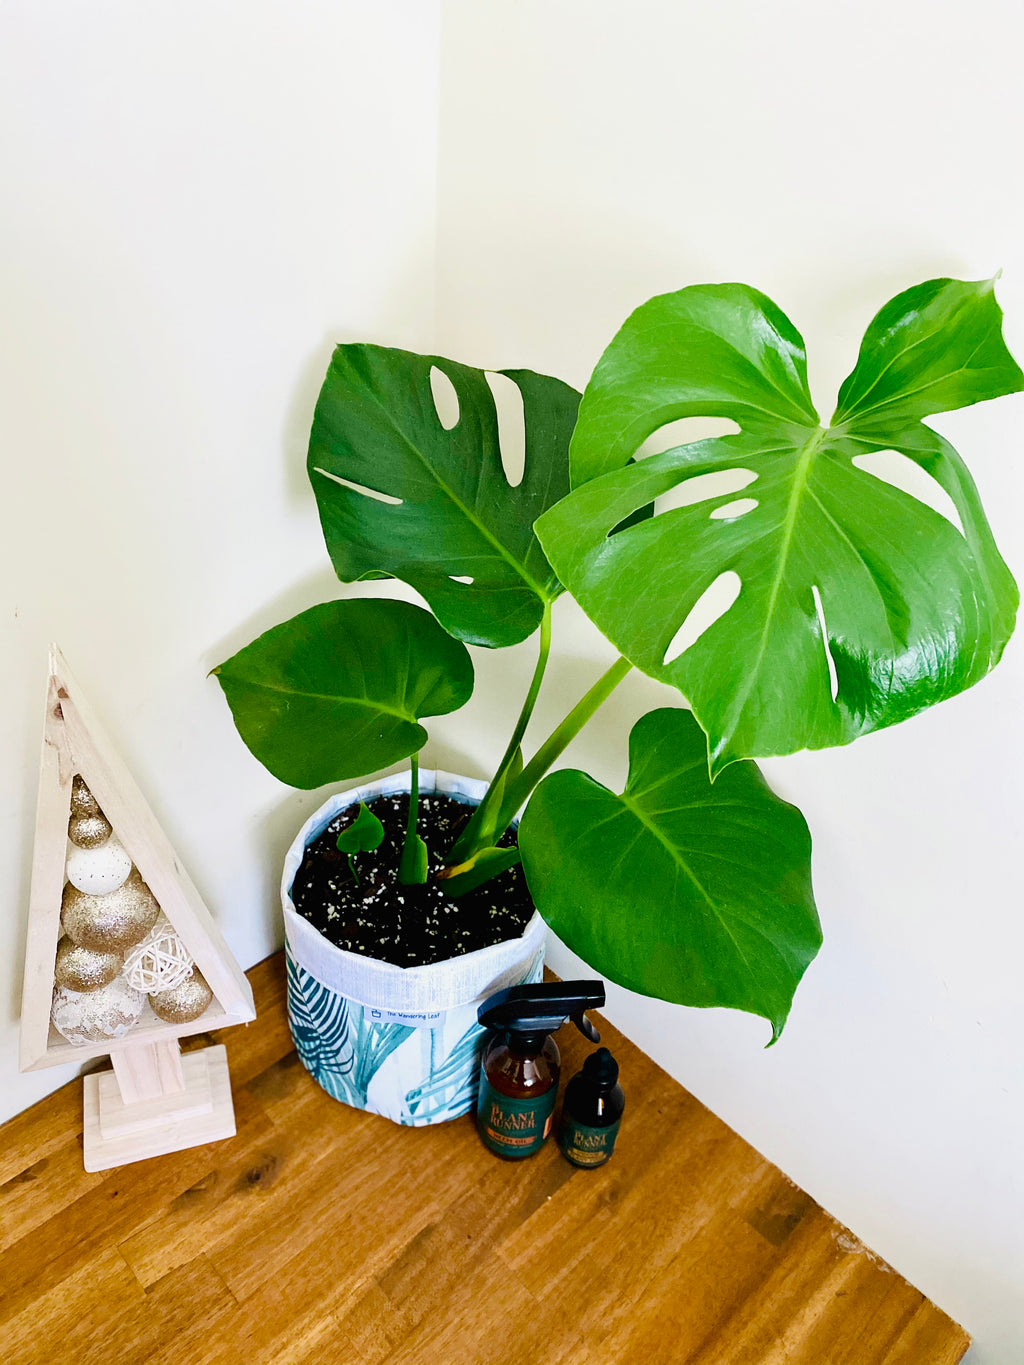 Monstera Deliciosa Bundle with Neem Oil and Plant Food